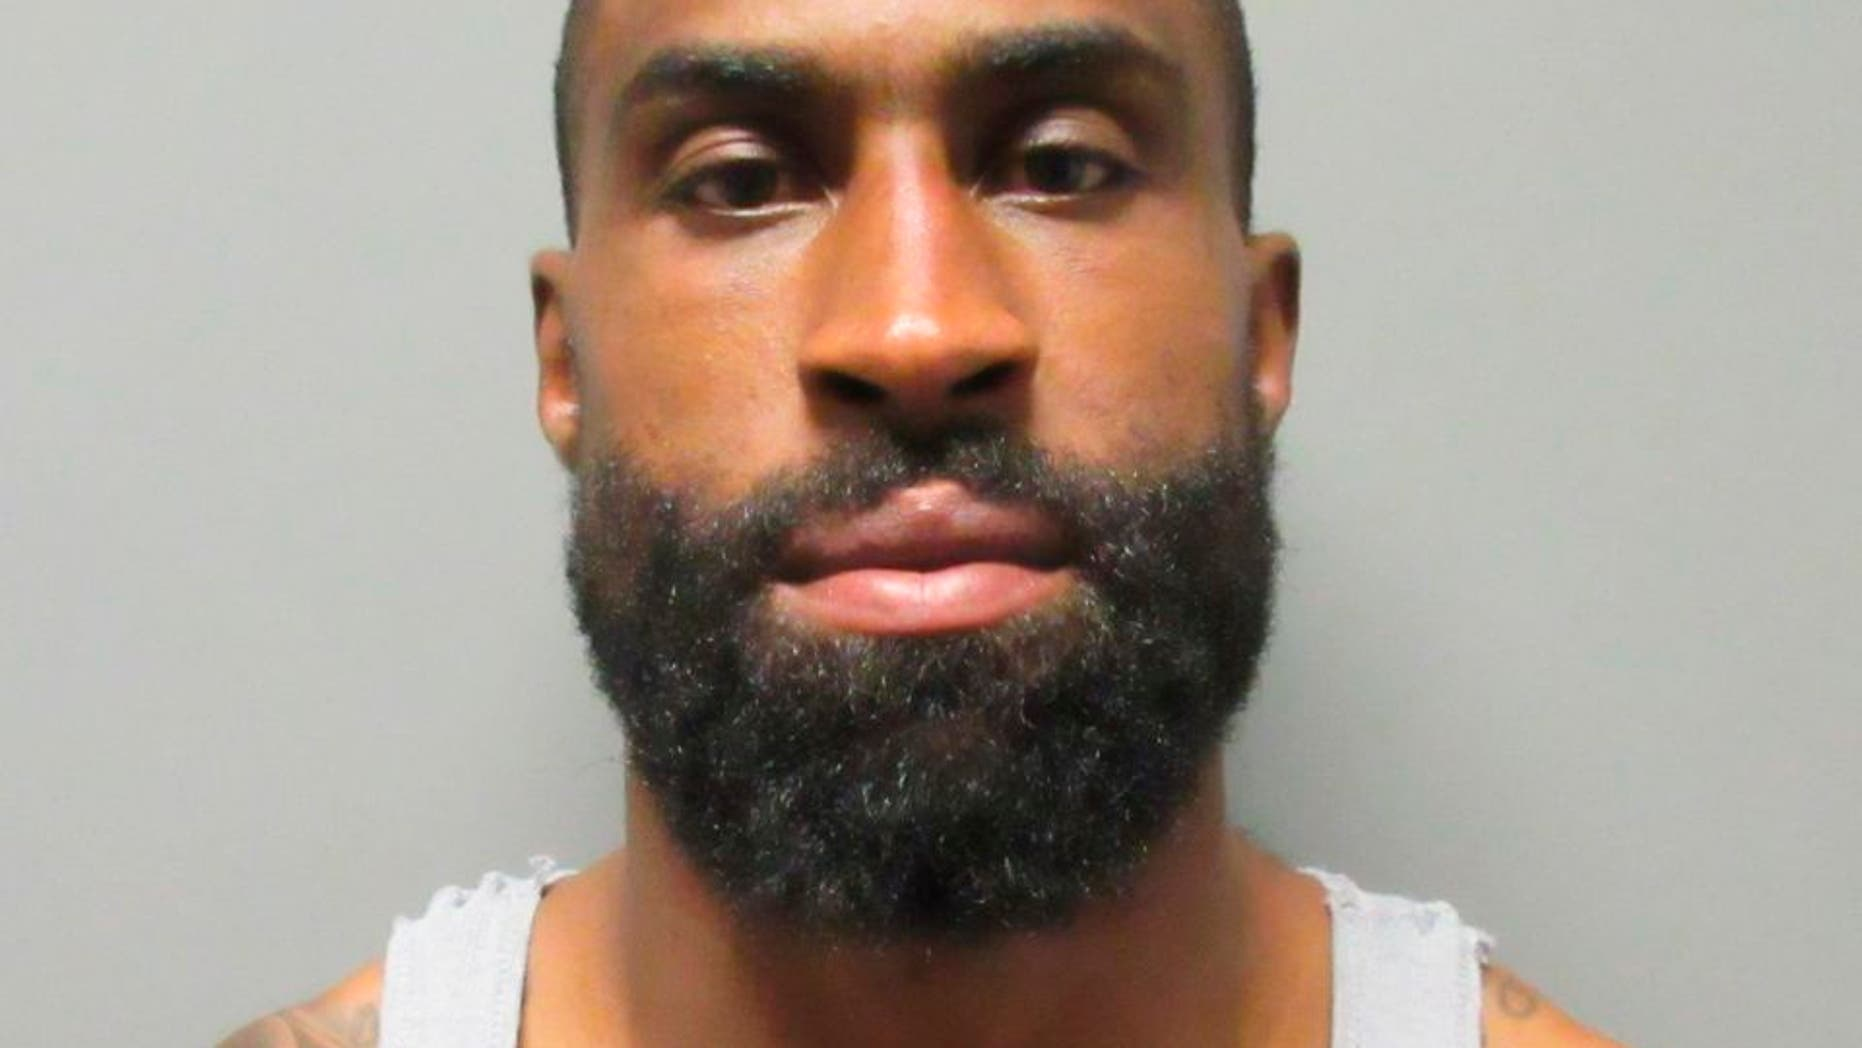 Former Seahawks CB Brandon Browner Sentenced to 8 Years in Prison